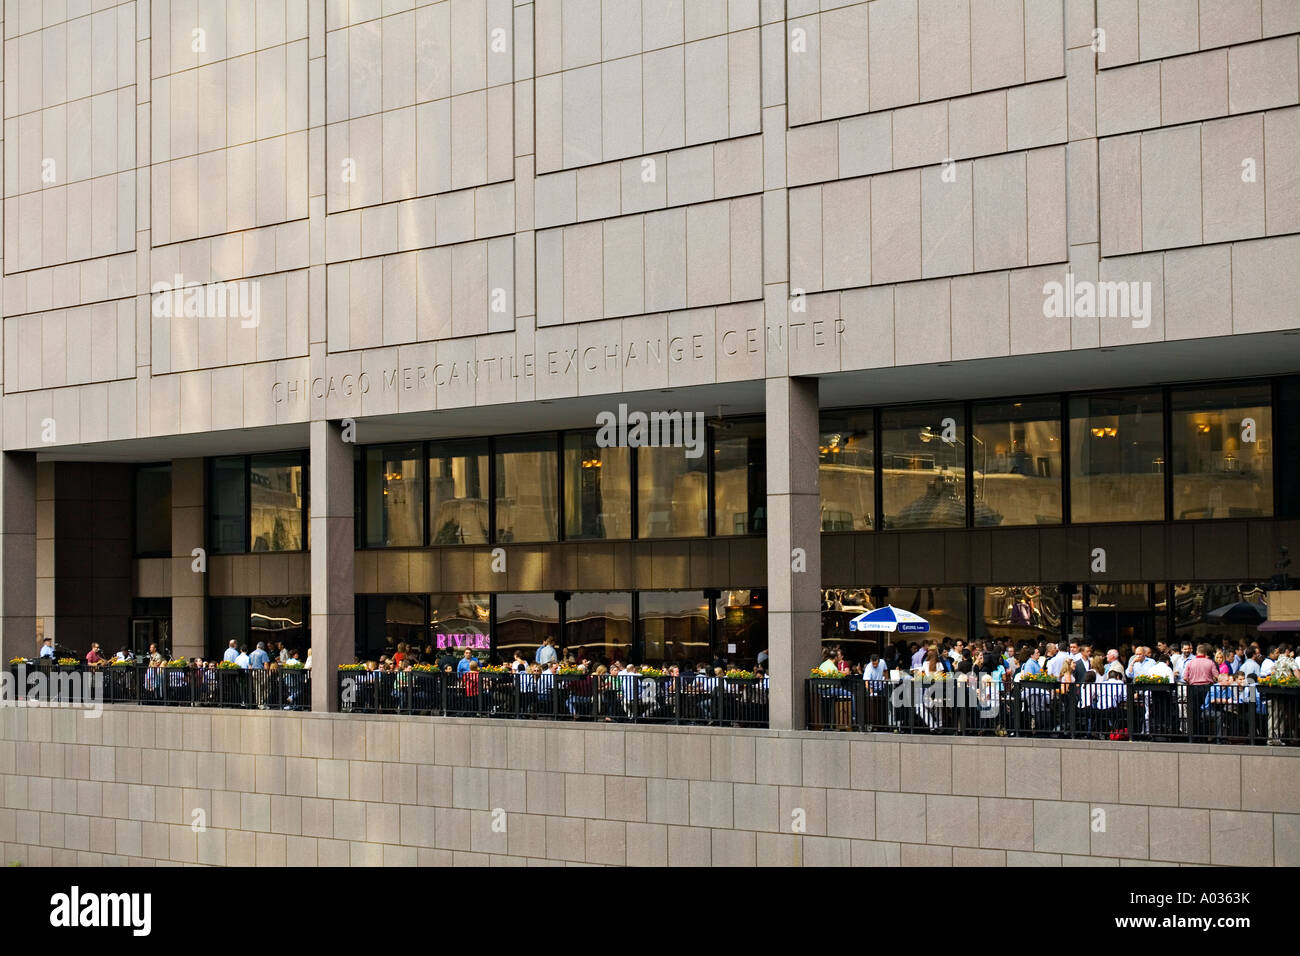 ILLINOIS Chicago Many people on outdoor patio restaurant in hicago Mercantile Exchange Center after work Stock Photo